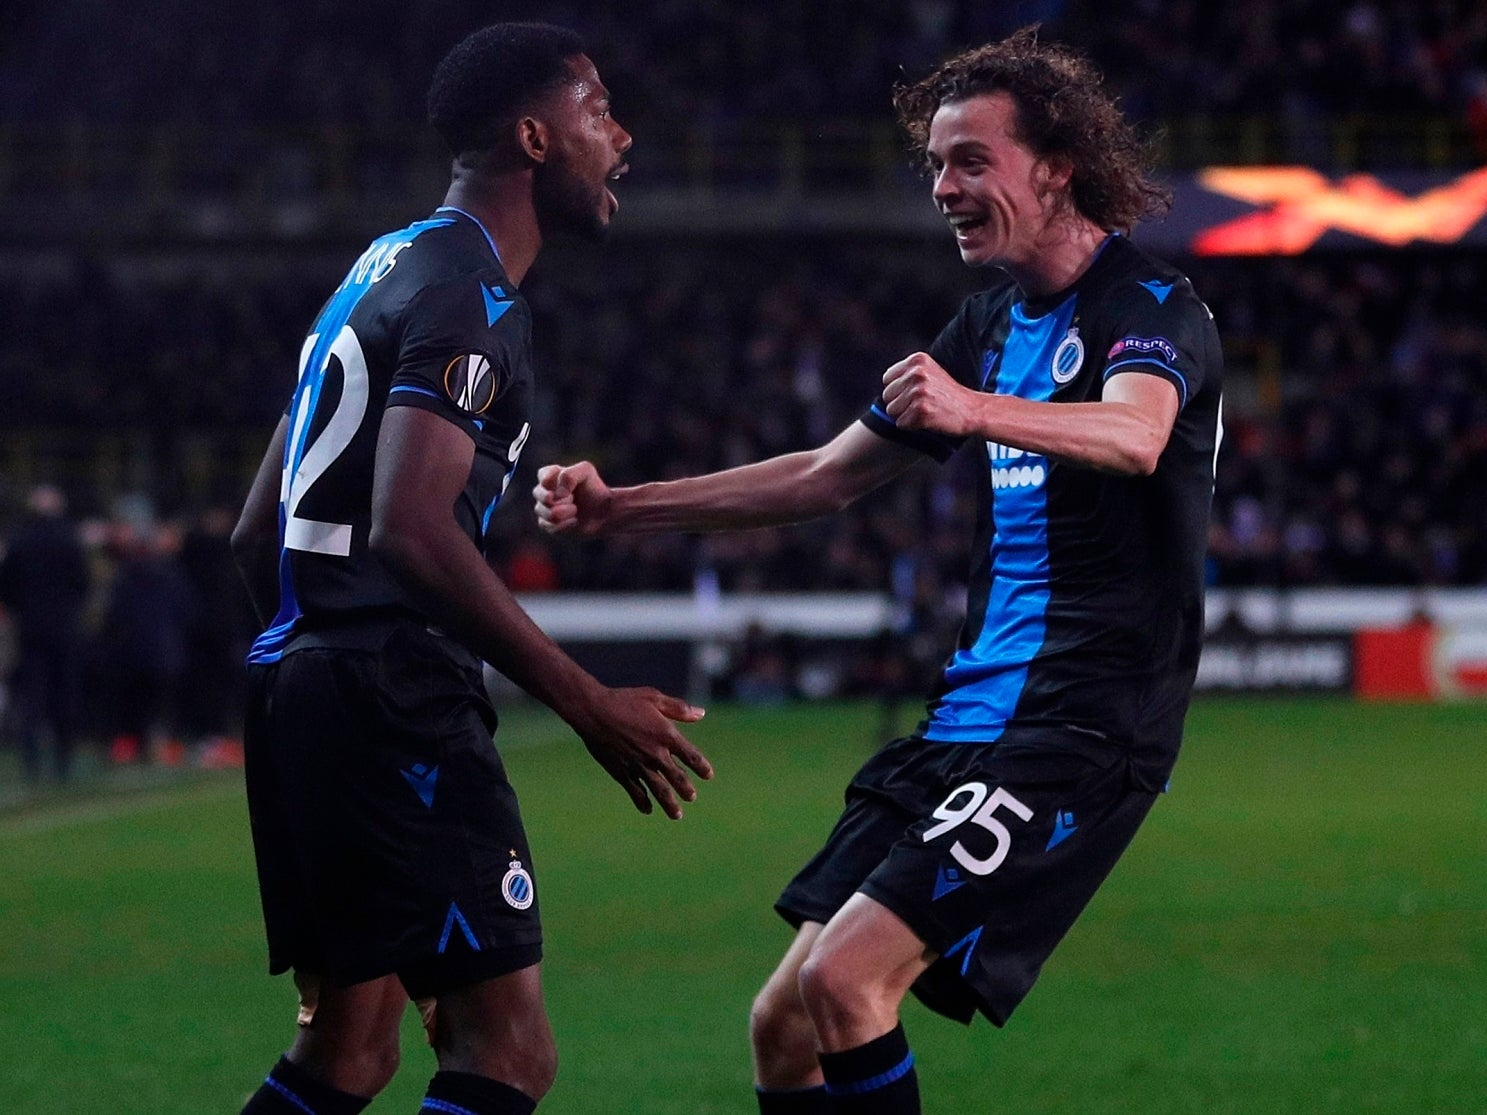 Club Brugge declared Belgian champions after season is cancelled due to coronavirus outbreak